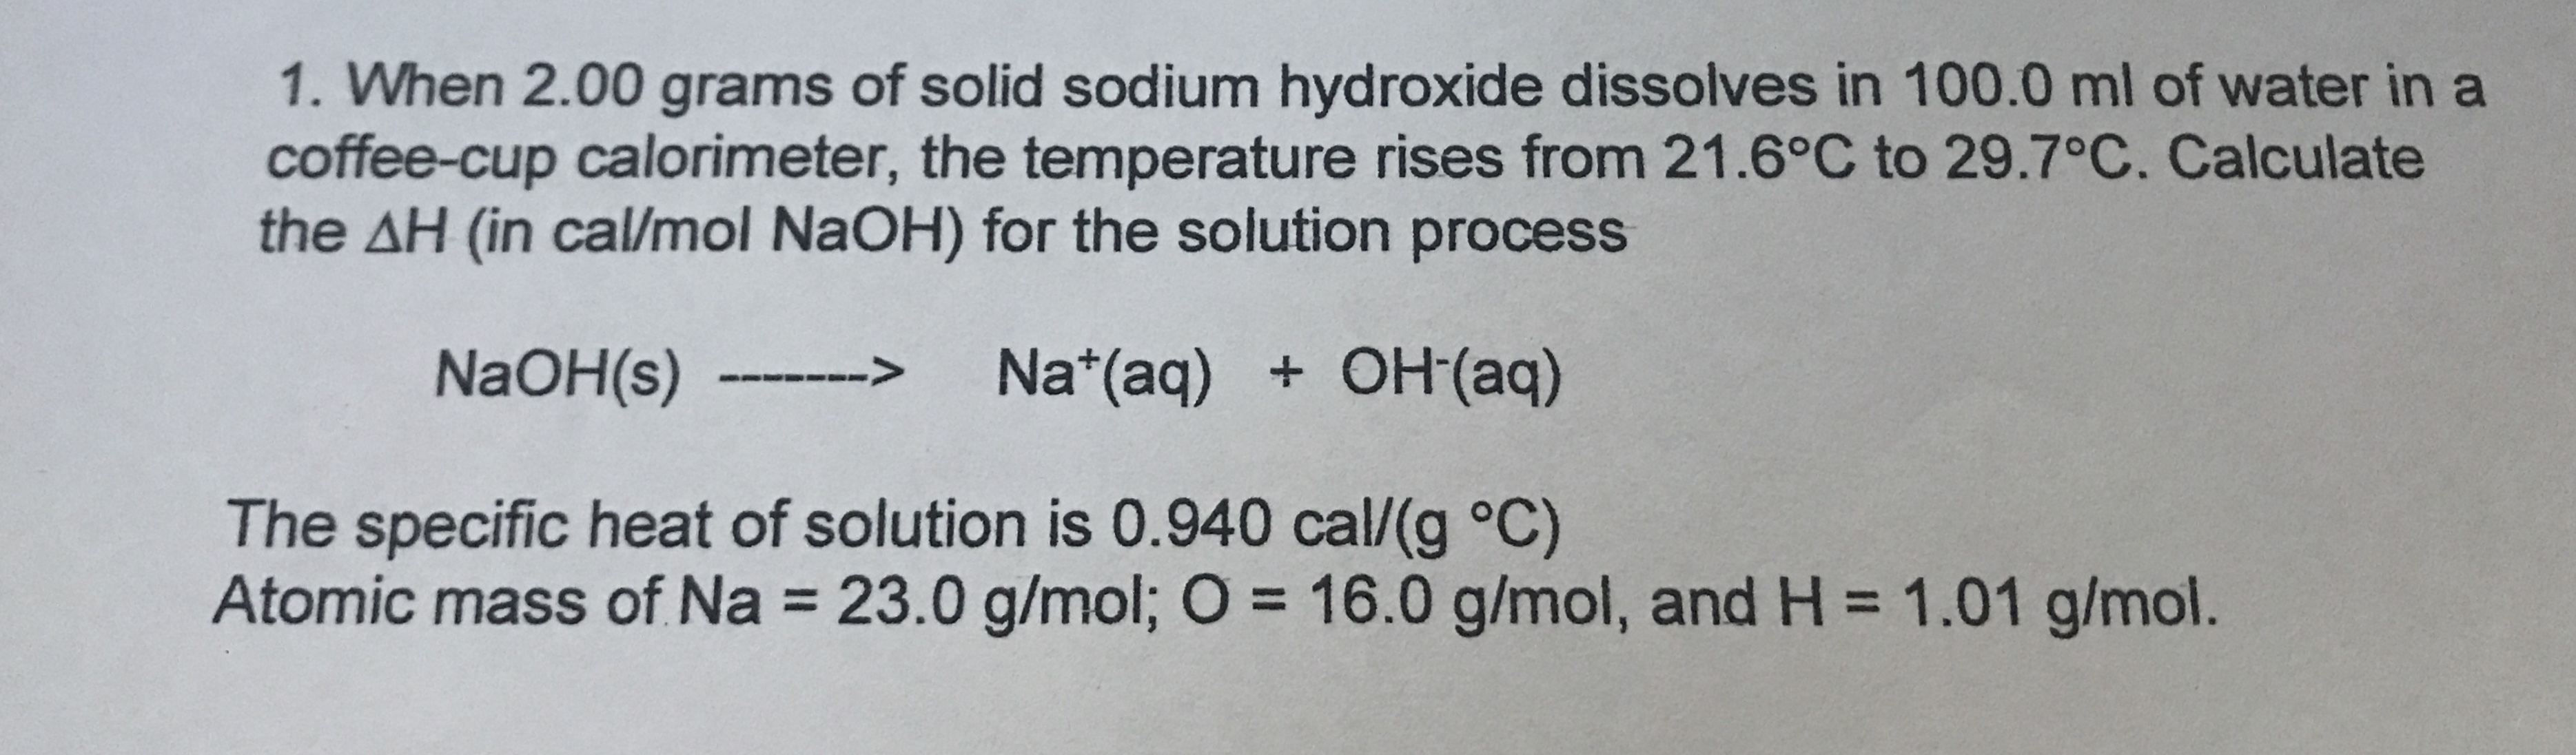 1. When 2.00 grams of solid sodium hydroxide dissolves in 100.0 ml of water in a coffee-cup calorimeter, the temperature rises from 21.6°C to 29.7°C. Calculate the AH (in cal/mol NaOH) for the solution process Na (aq) OH(aq) > NaOH(s) The specific heat of solution is 0.940 cal/(g °C) Atomic mass of Na 23.0 g/mol; O 16.0 g/mol, and H 1.01 g/mol.